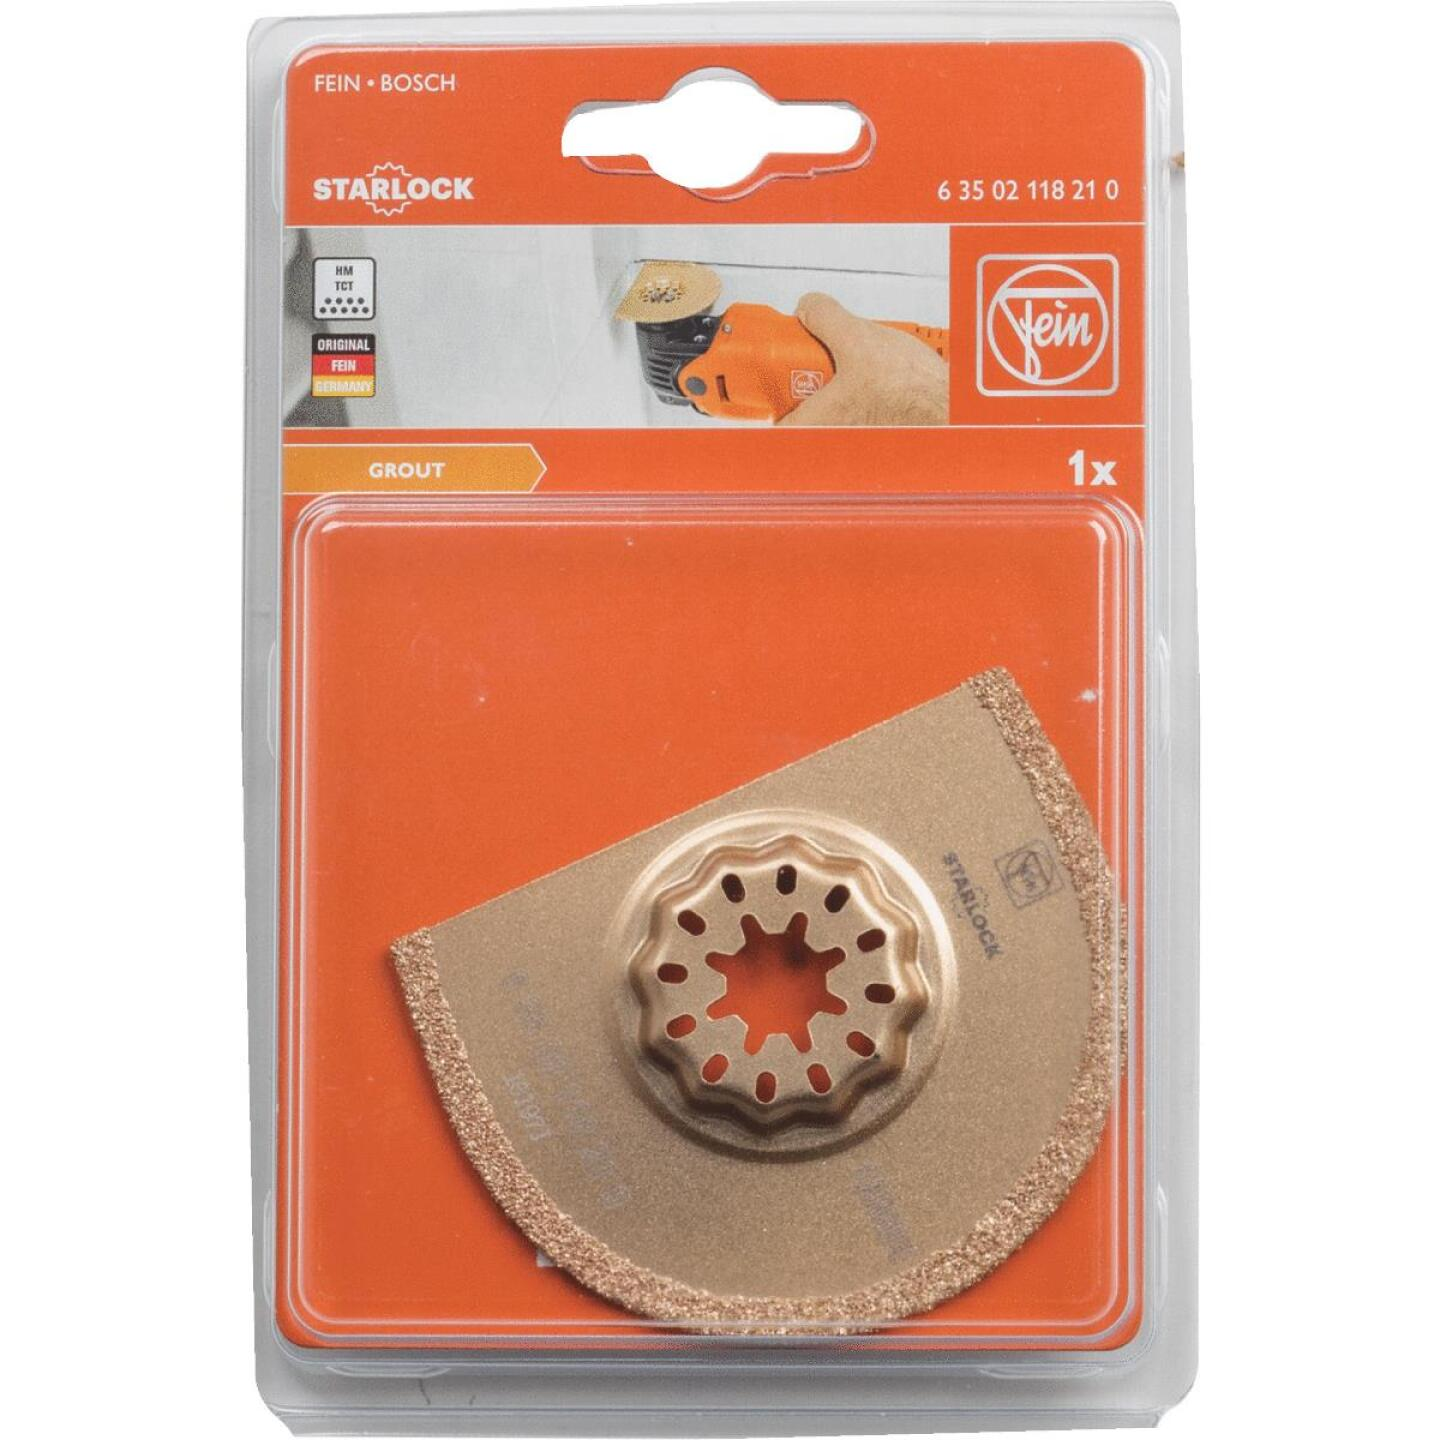 Fein Starlock 2-1/2 In. Carbide Grout Oscillating Blade Image 2